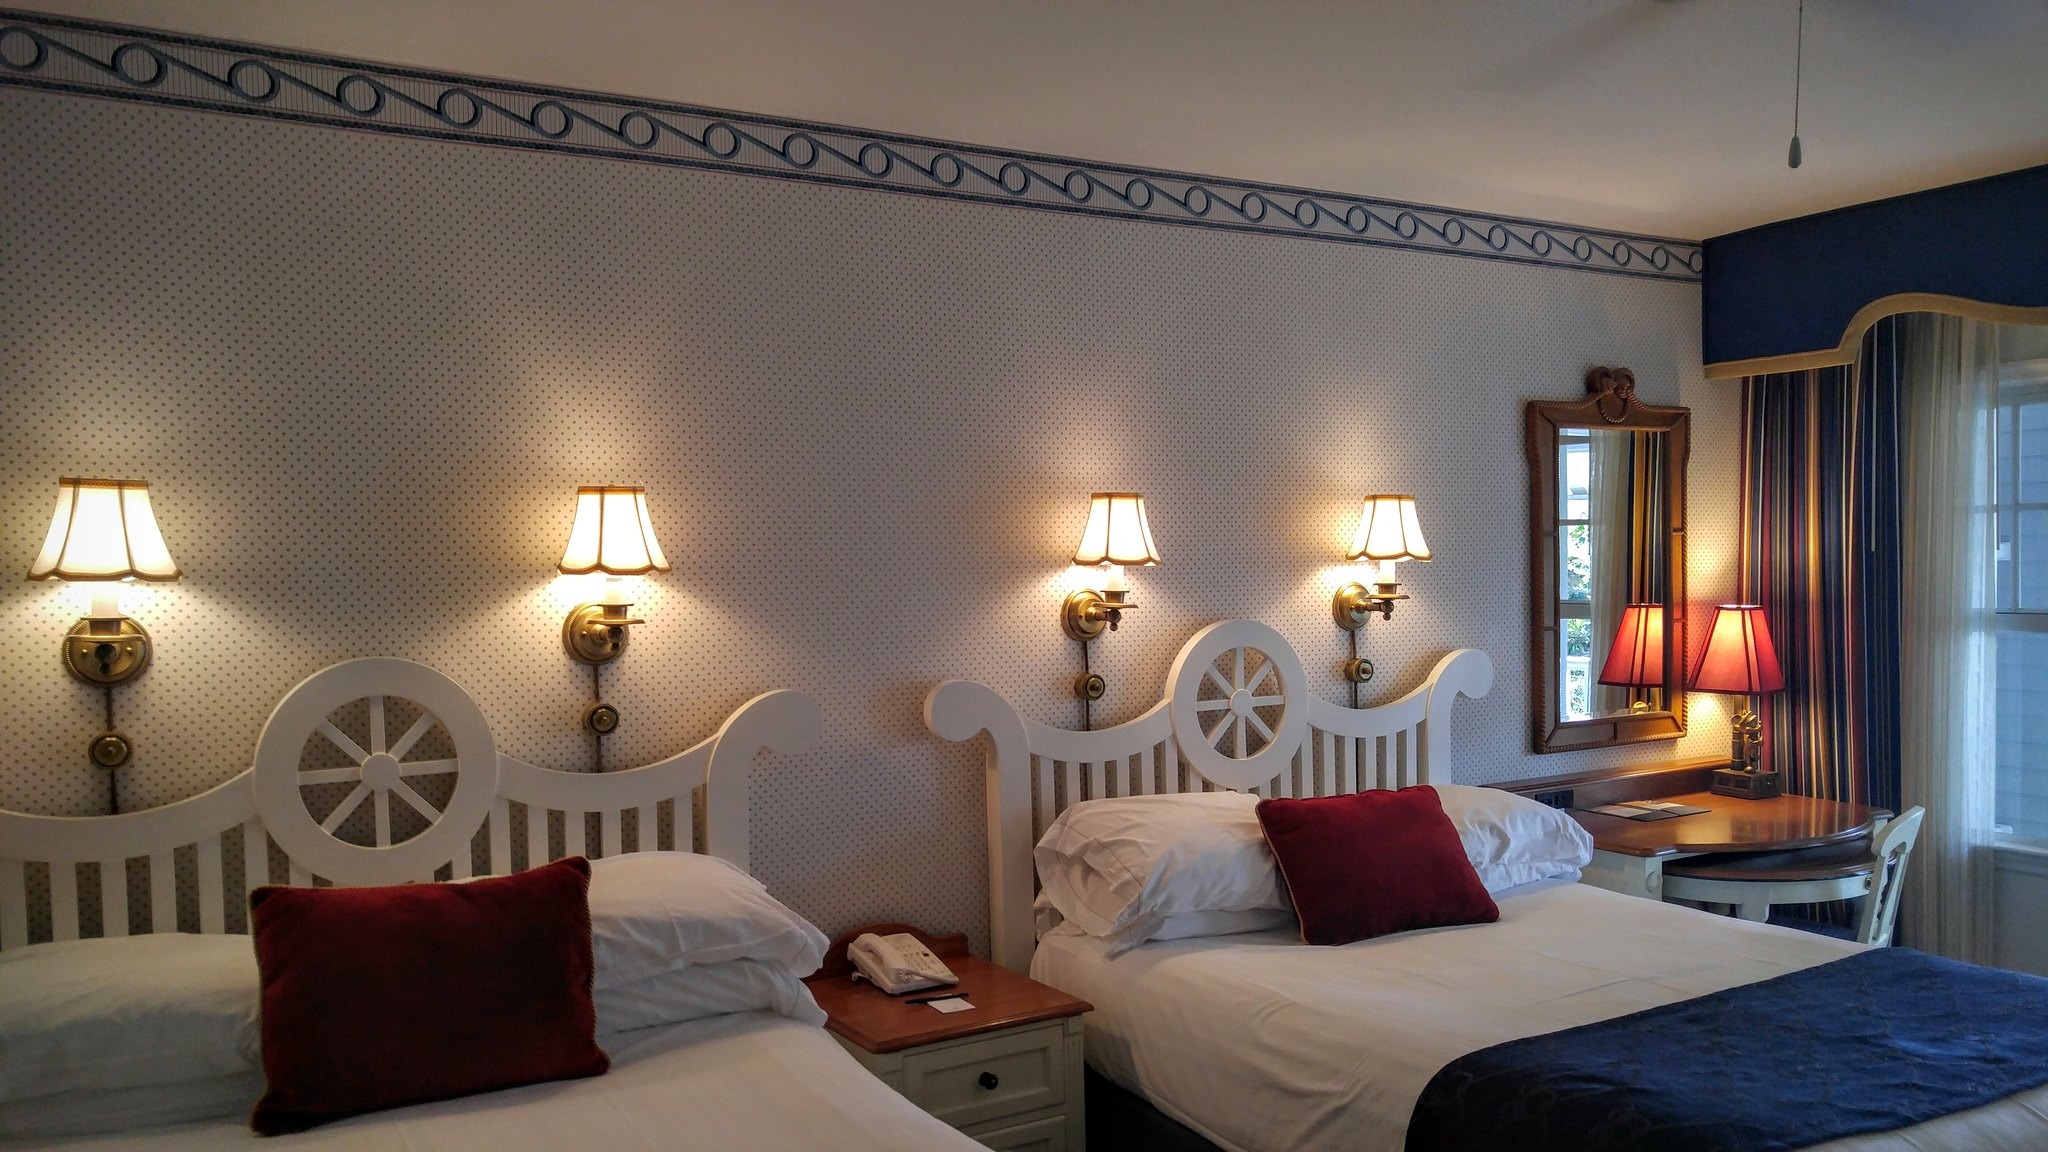 Standard Room with Two Queen Beds at Disney's Yacht Club Resort